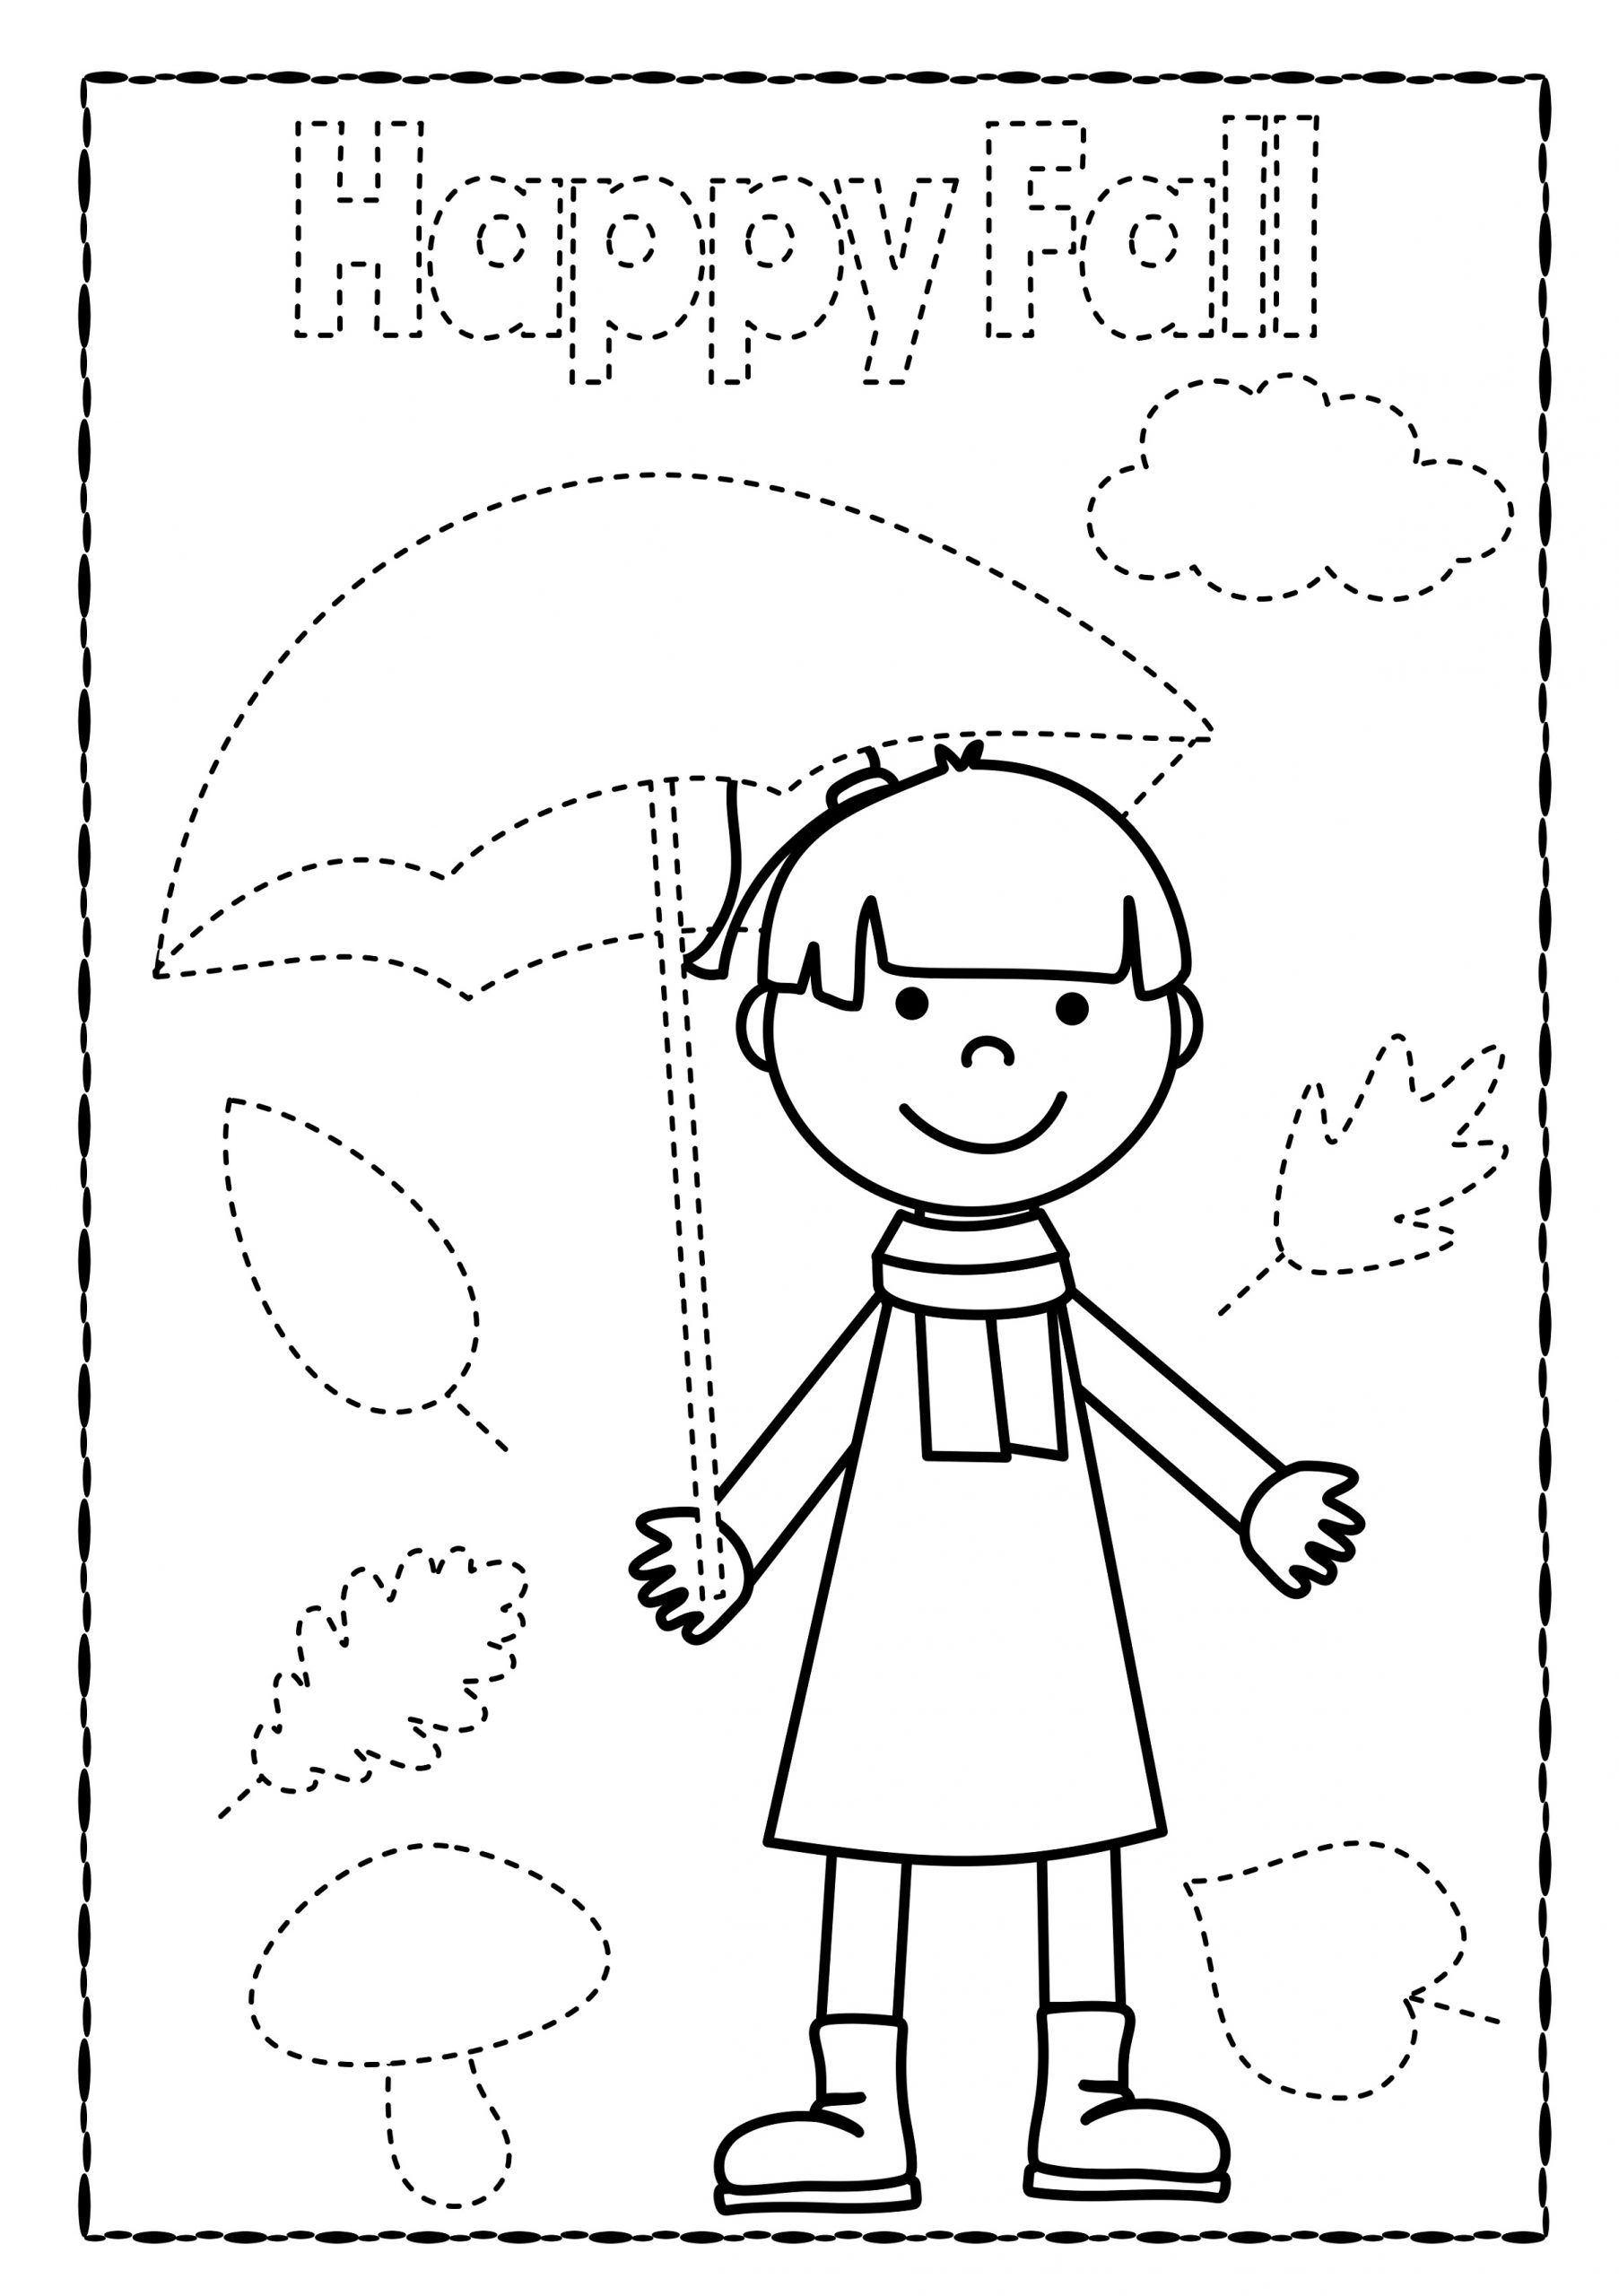 Alphabet Tracing Activities For Preschoolers